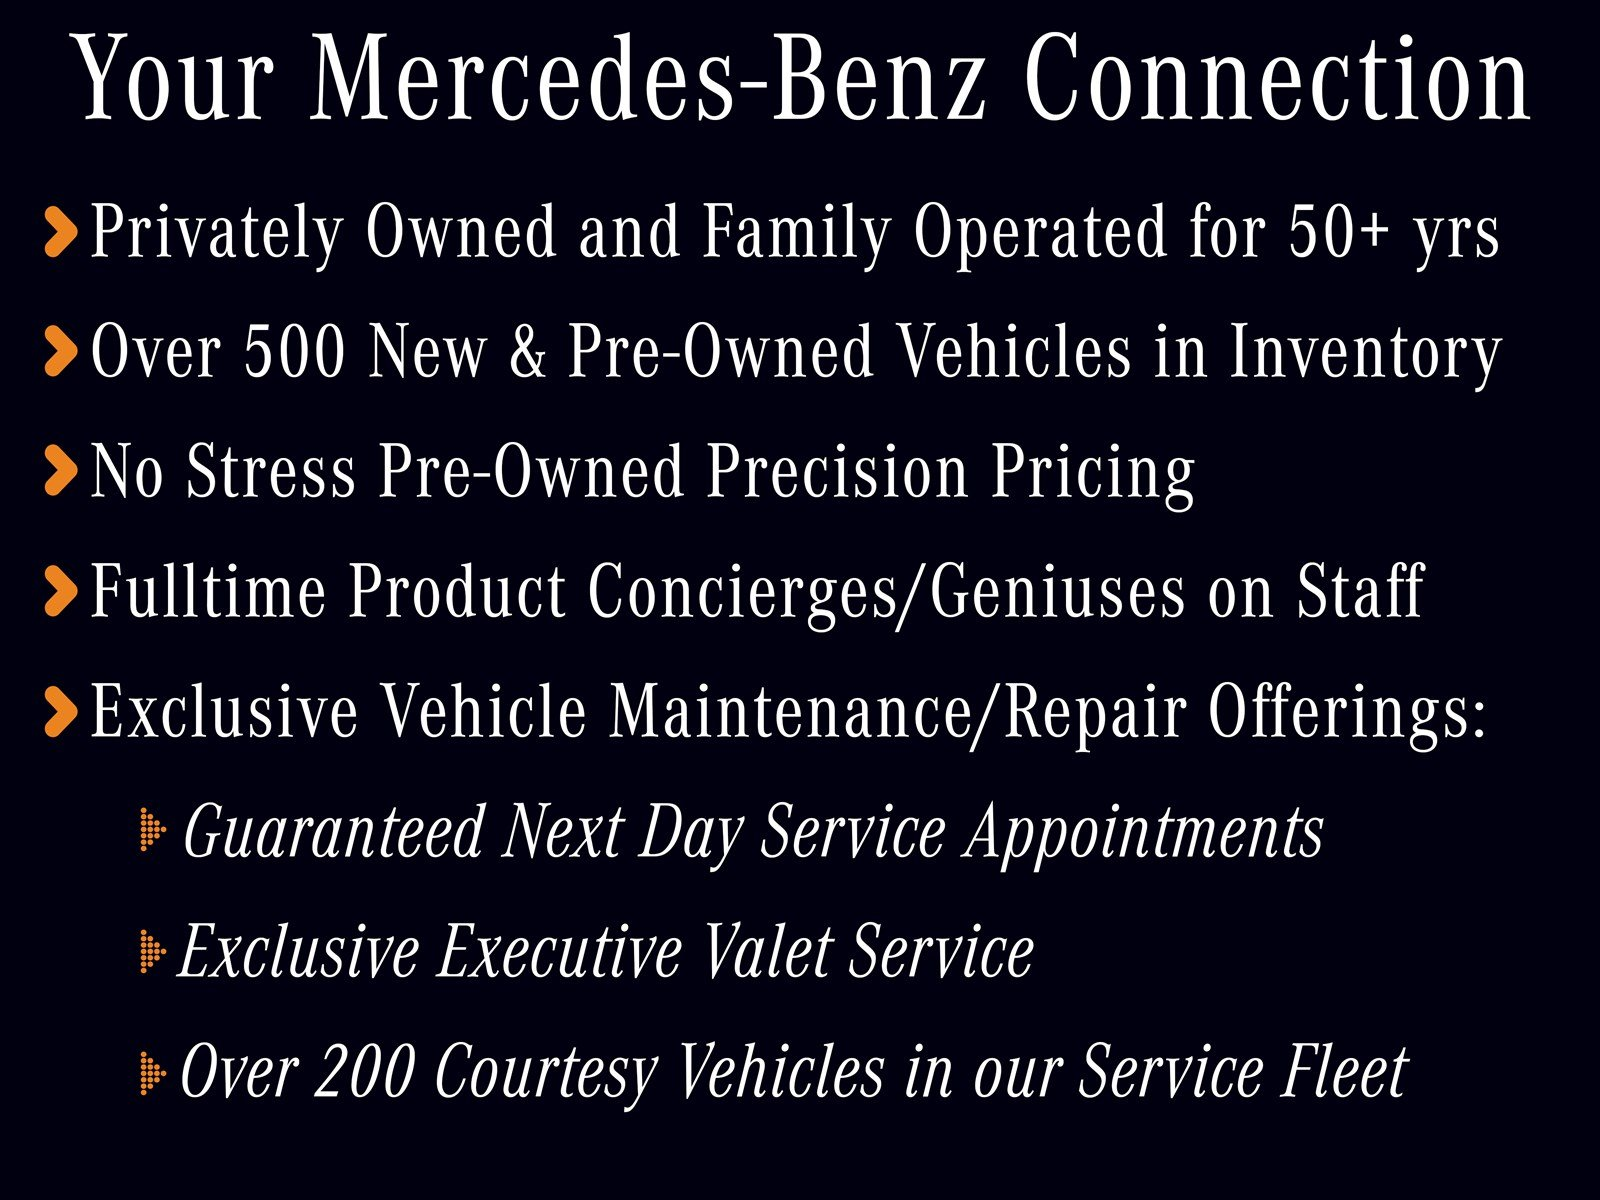 b expert service review used of benz class mercedes vehicle